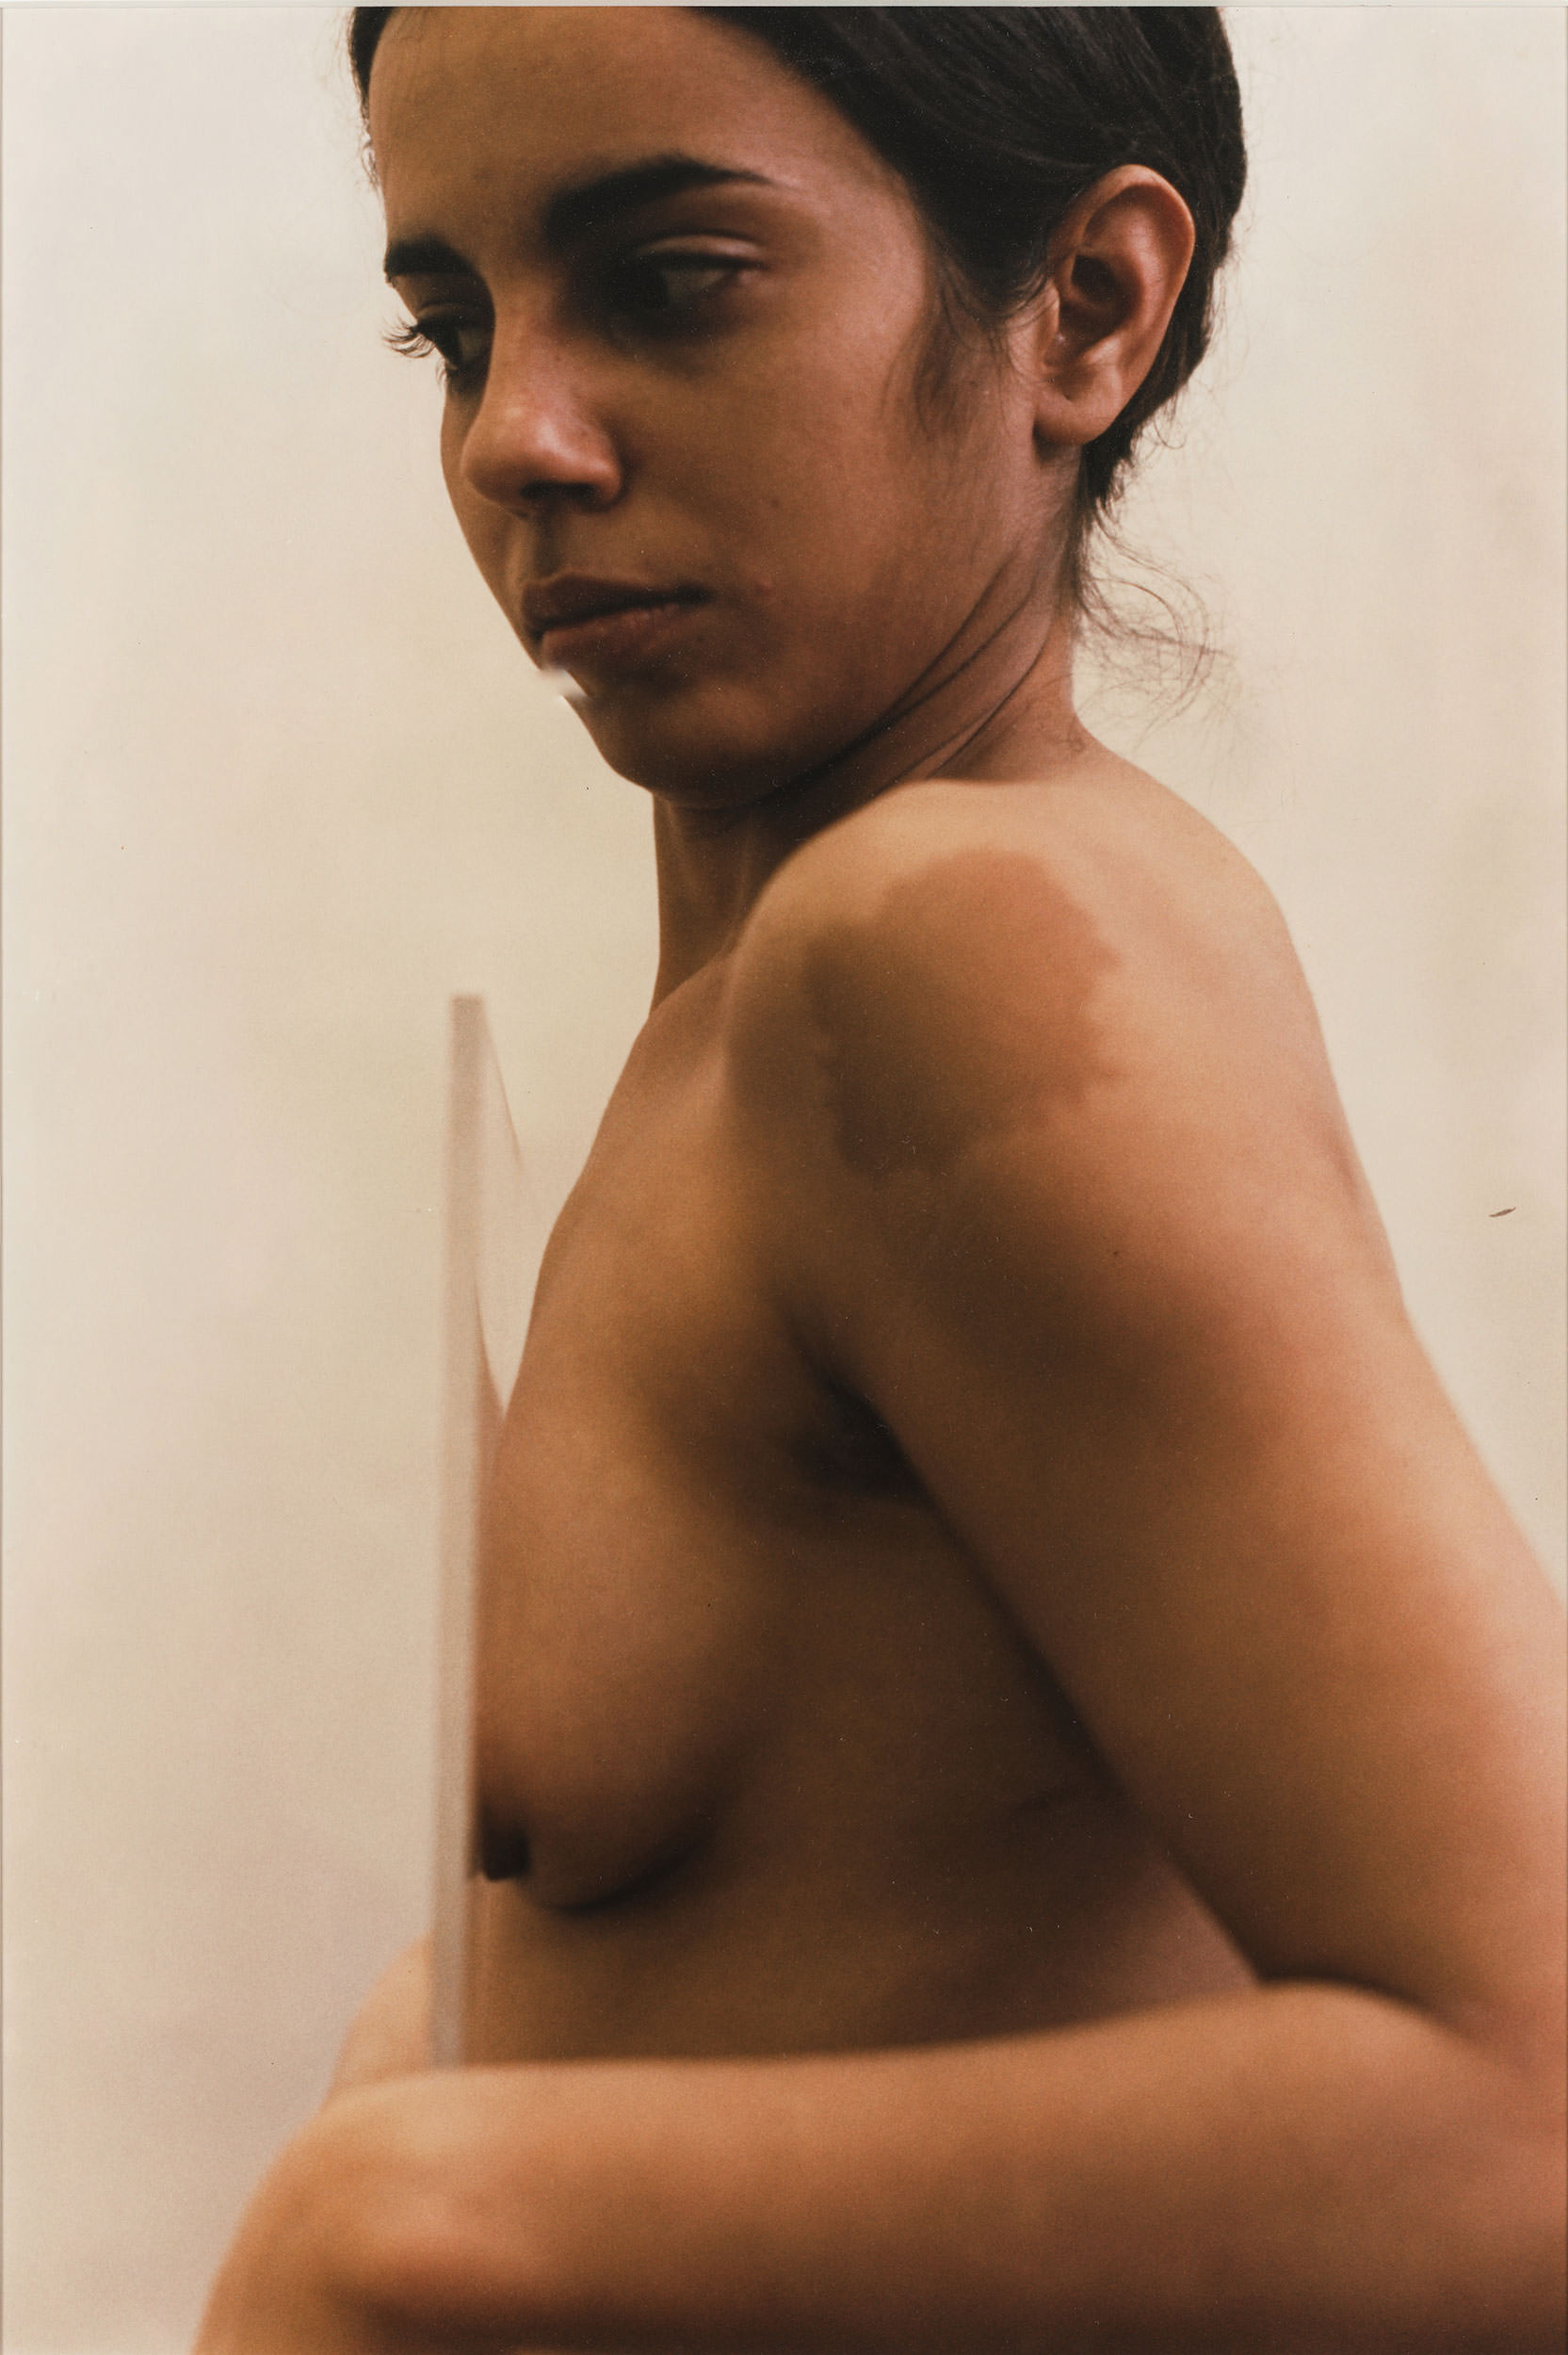 Ana Mendieta, Untitled (Glass on Body), 1972